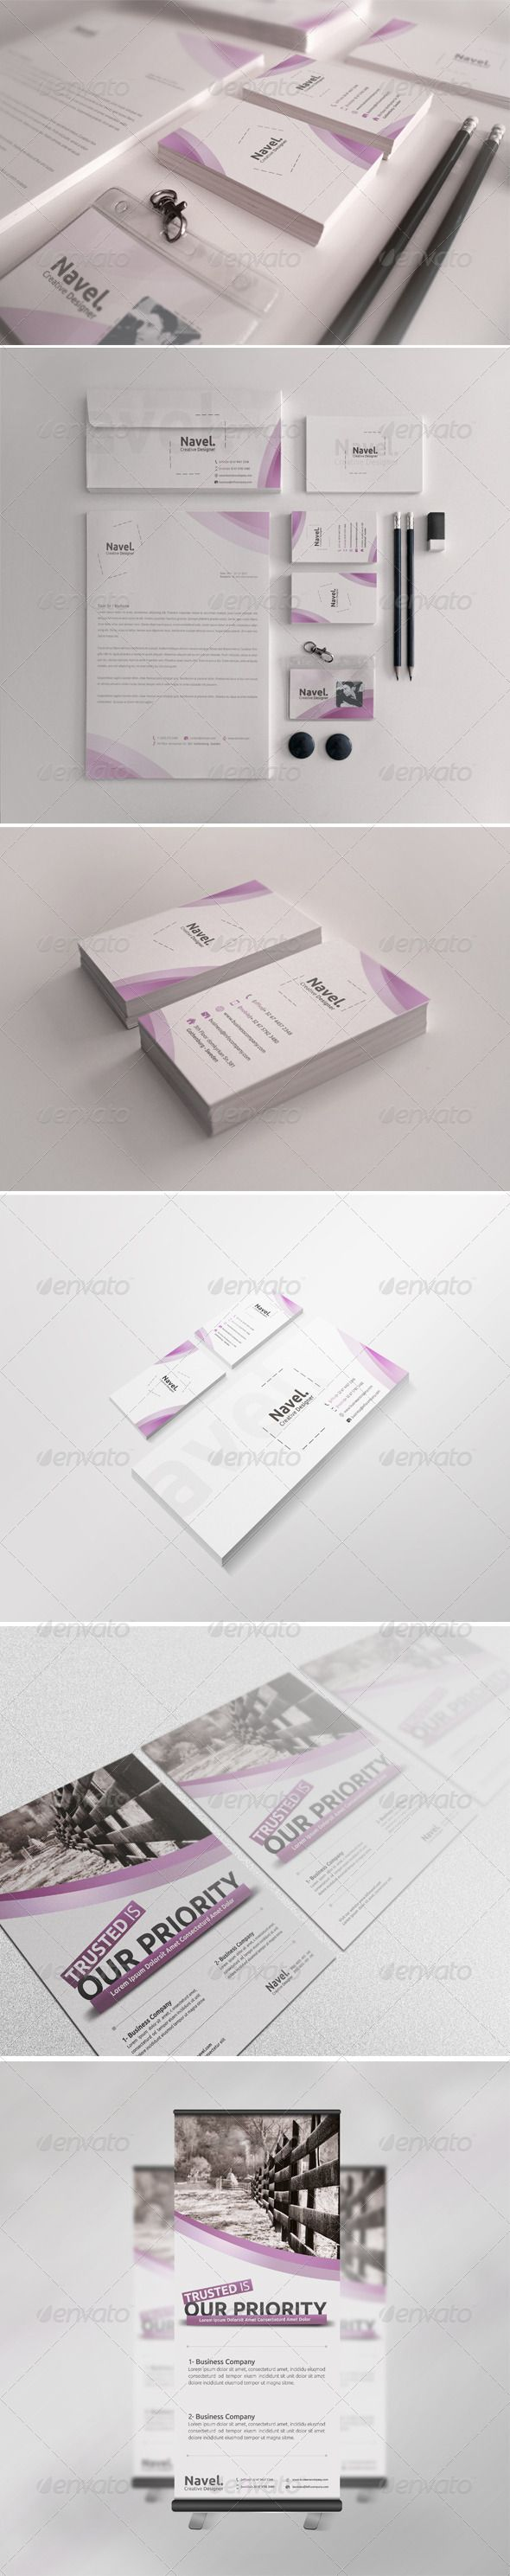 25 best ideas about stationery templates on